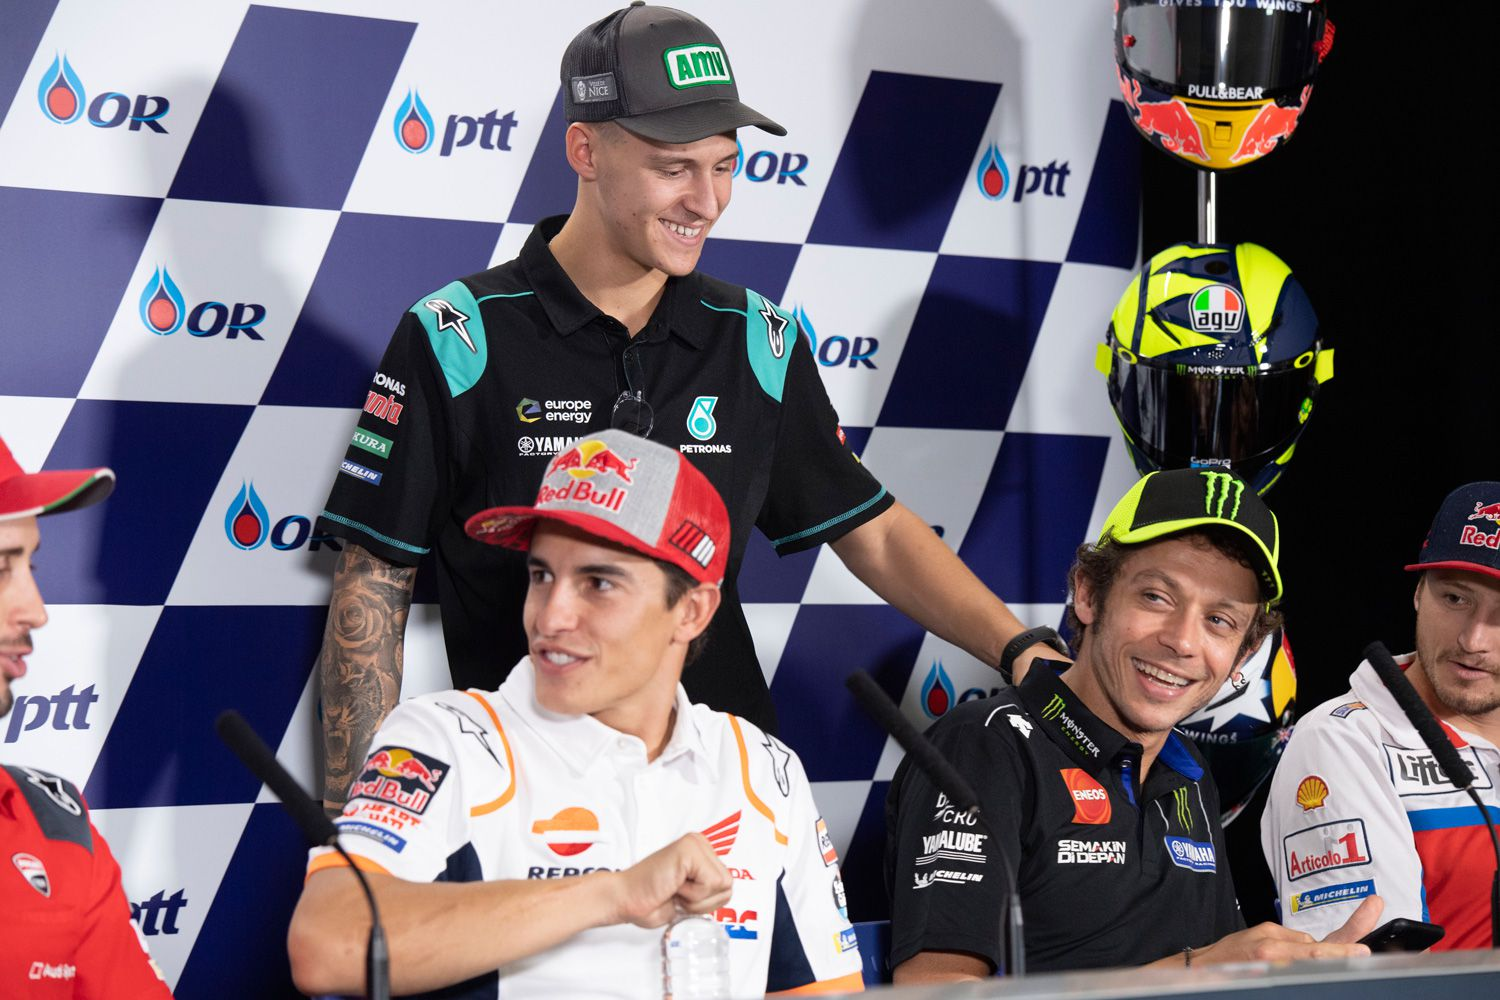 Quartararo with his idol, Valentino Rossi, and championship rival, Marc Márquez—17 world championship titles between them.